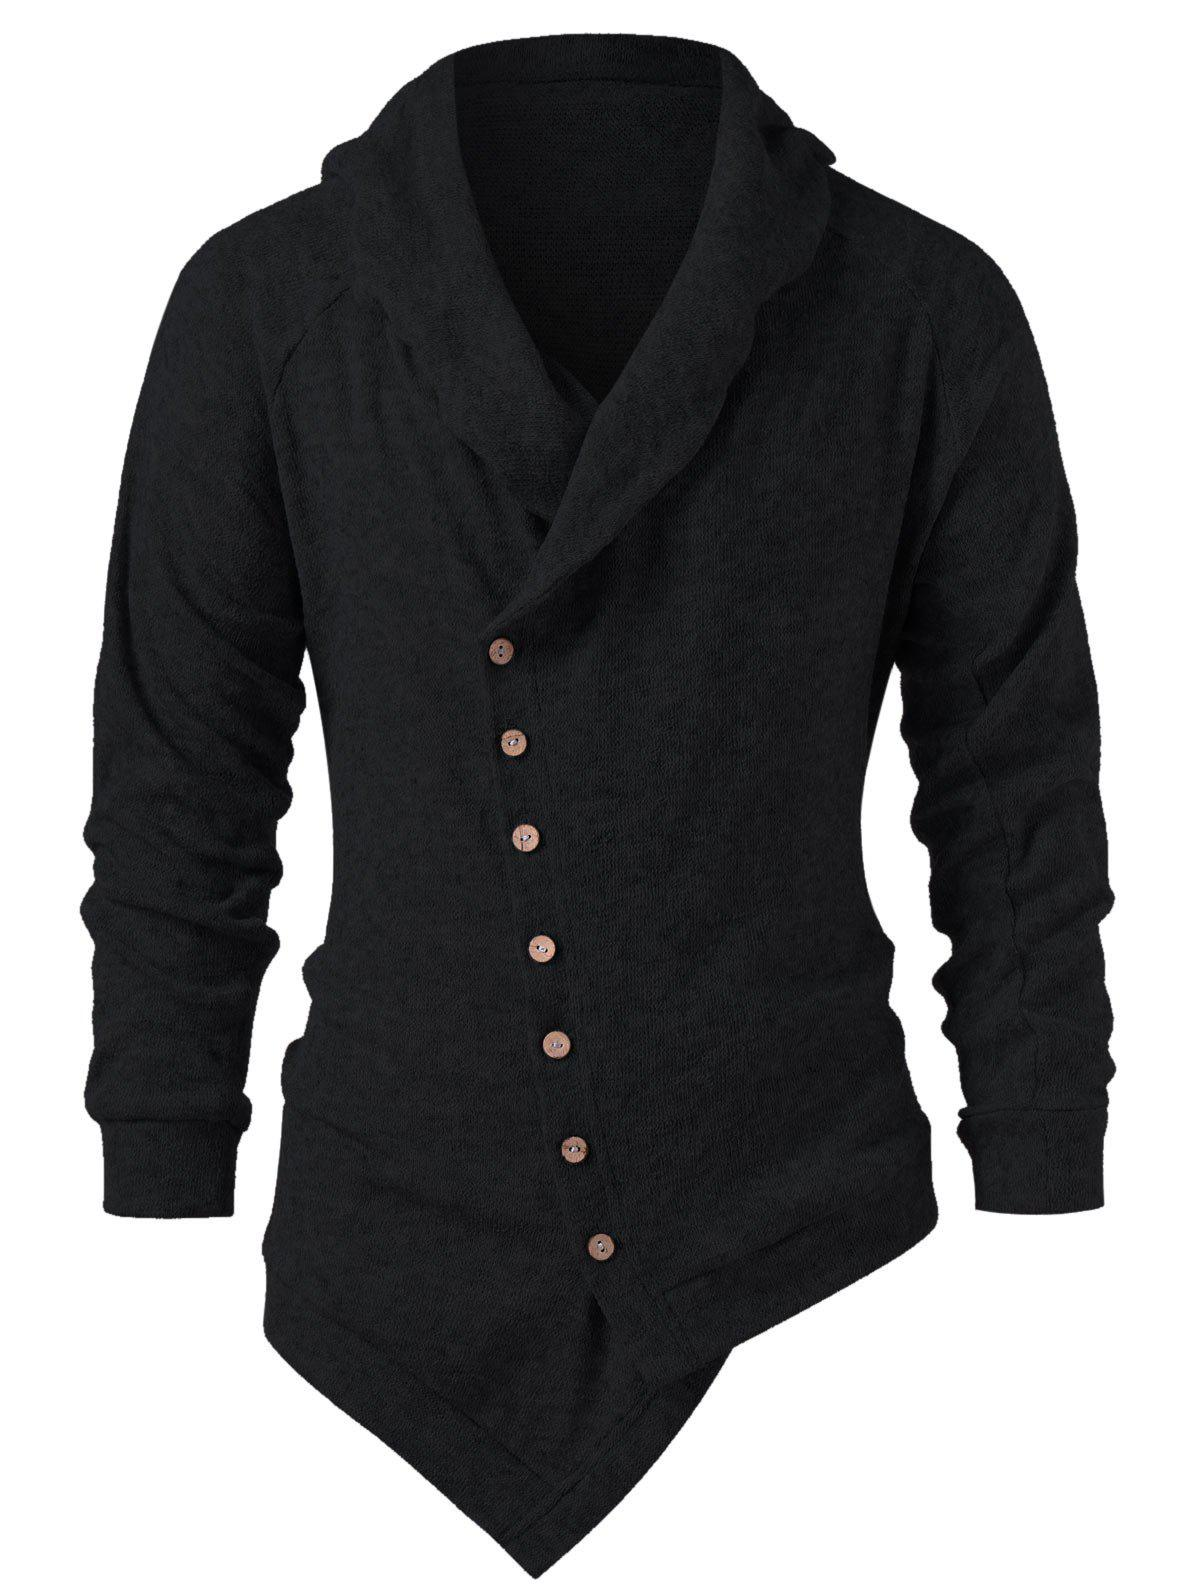 Discount Asymmetric Button Up Solid Color Cardigan